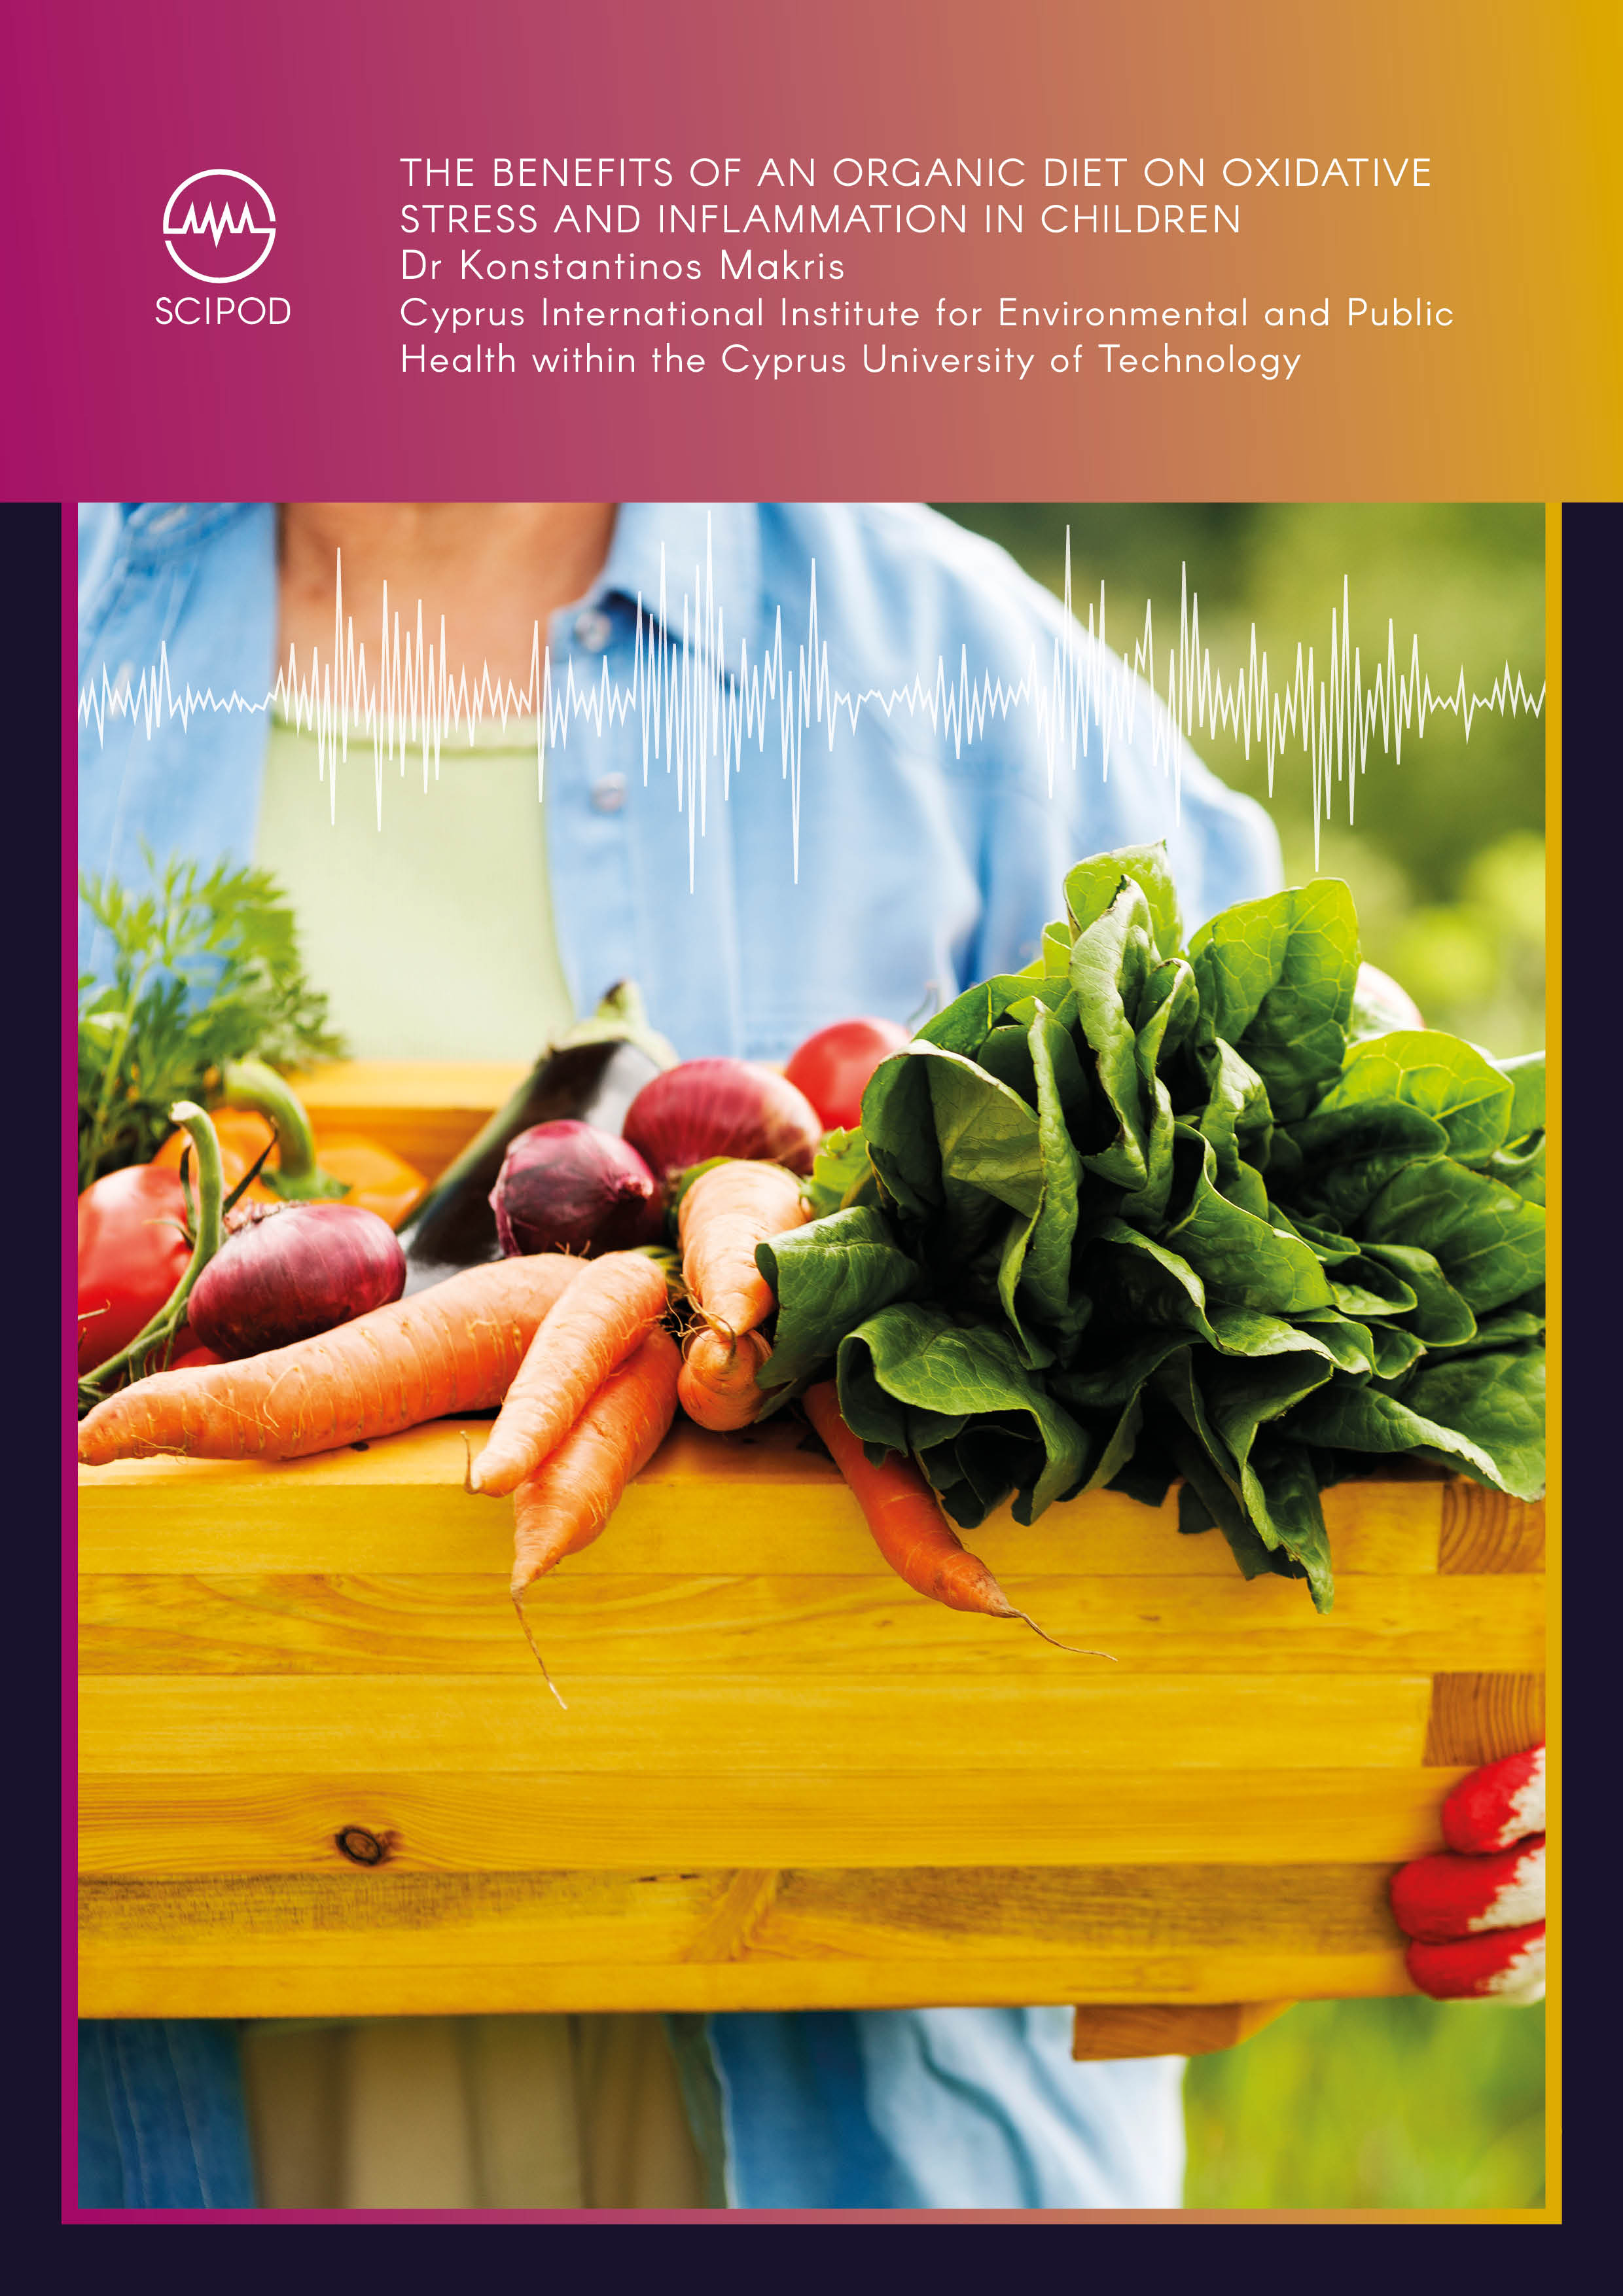 The Benefits of an Organic Diet on Oxidative Stress and Inflammation in Children – Dr Konstantinos Makris, Cyprus University of Technology